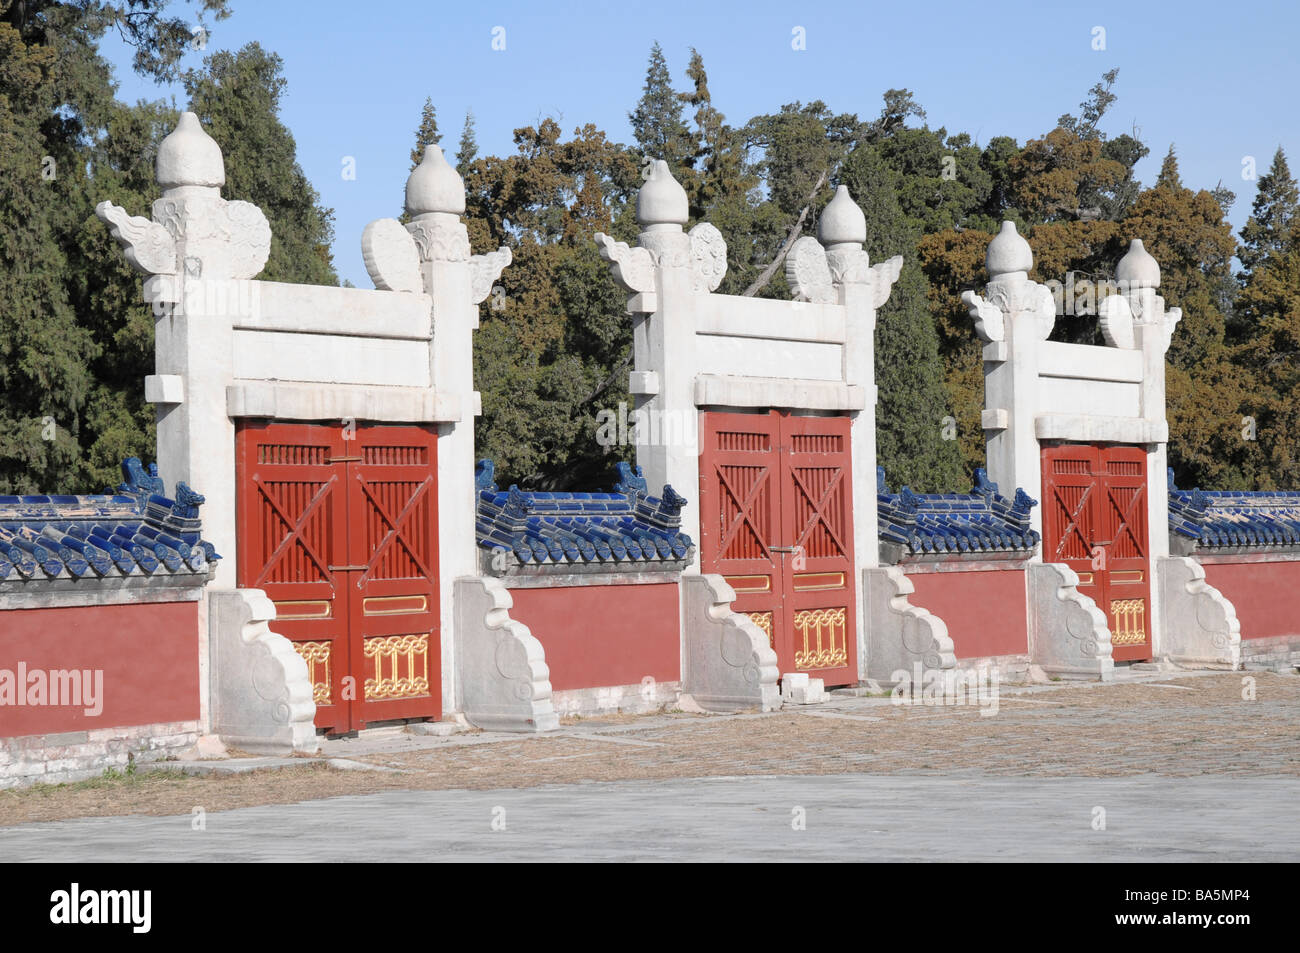 Gates at The Temple of Heaven (or Altar of Heaven),one of Beijing's most popular tourist attractions. Stock Photo